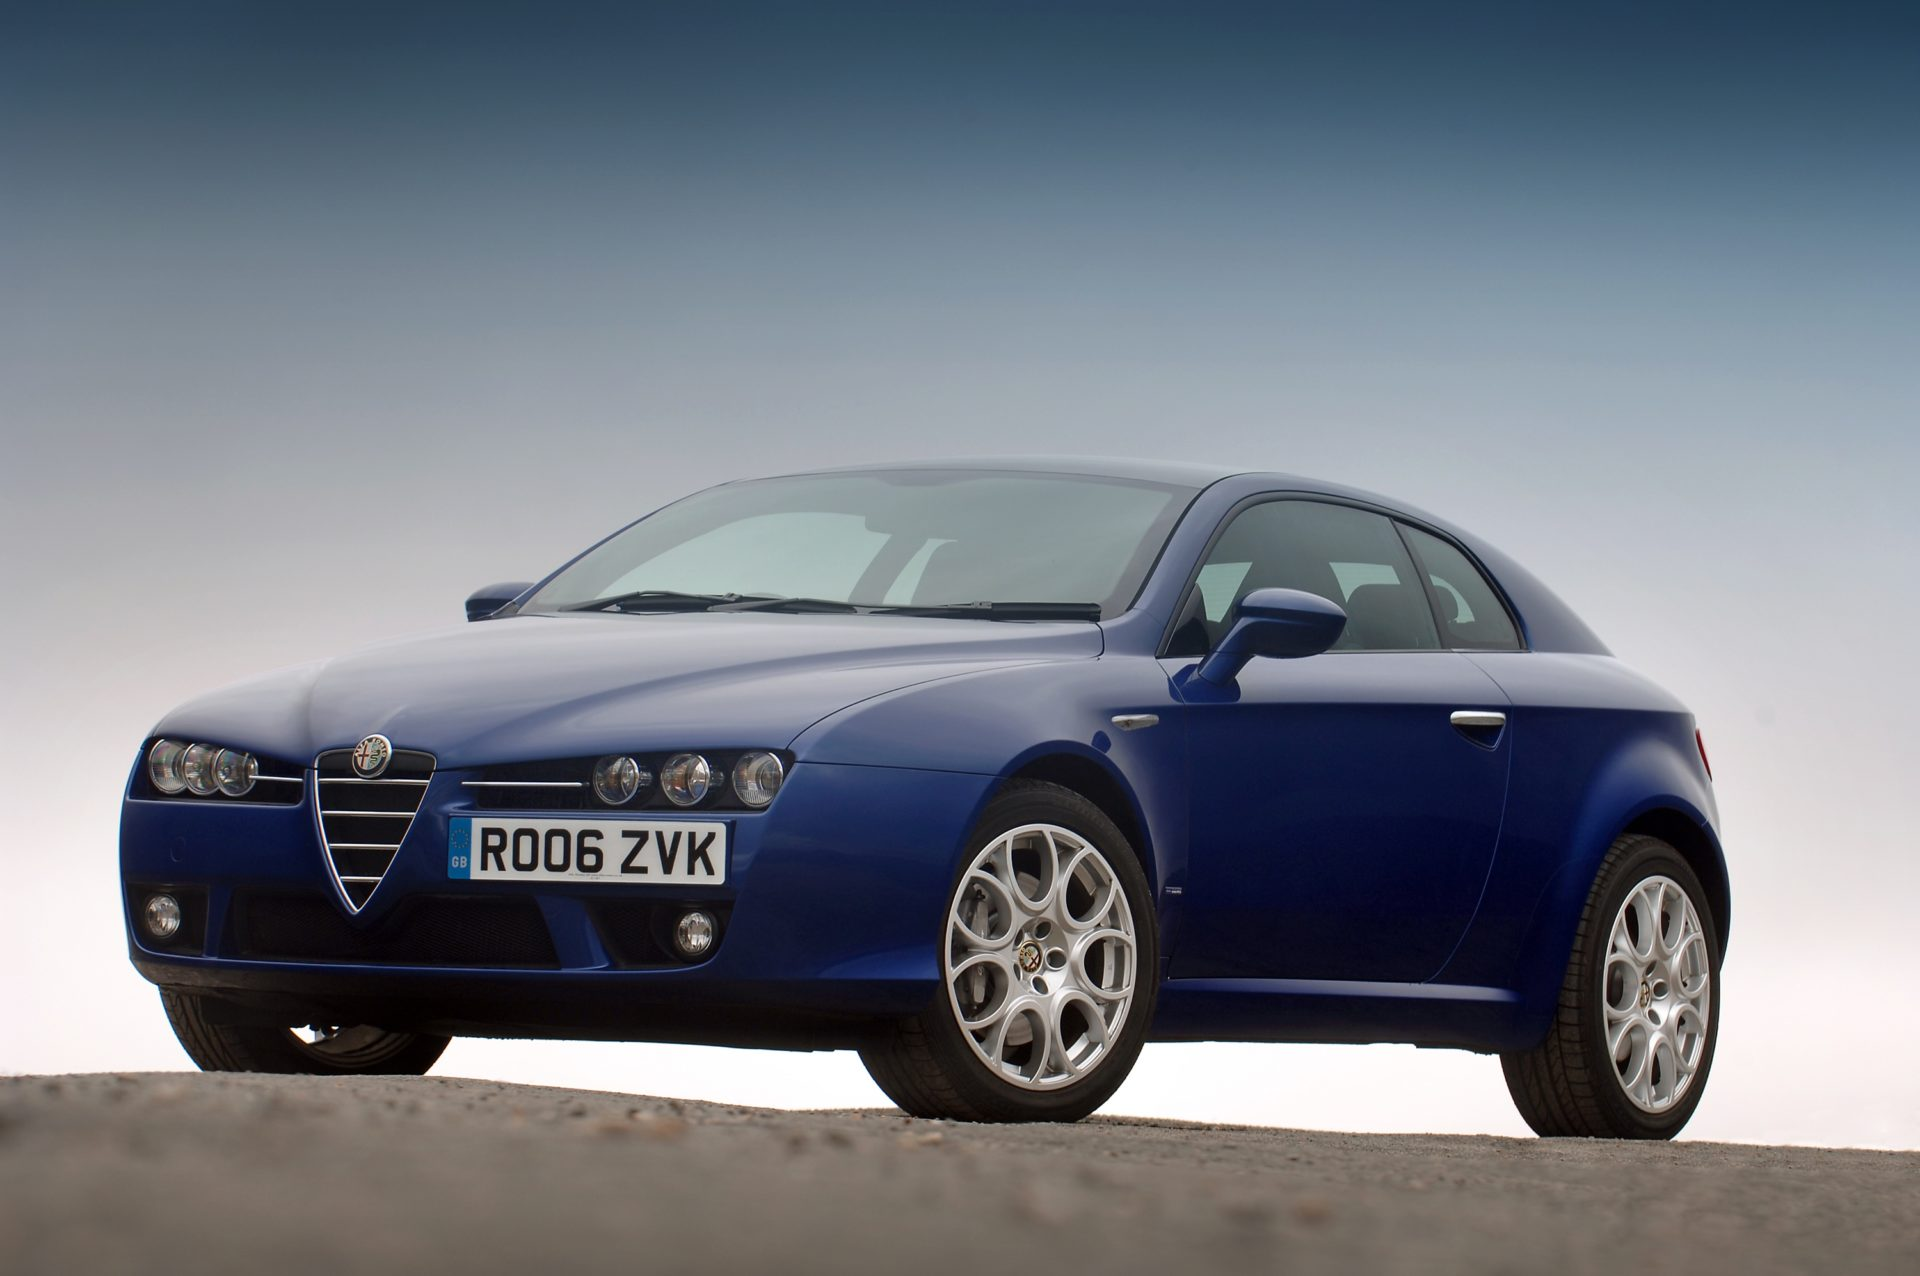 Alfa Romeo, Alfa Romeo Brera, Brera, motoring, automotive, carandclassic, carandclassic.co.uk, not2gradn, not2grand.co.uk, classic car, retro car, italian car, bargain car, Brera buying guide, featured